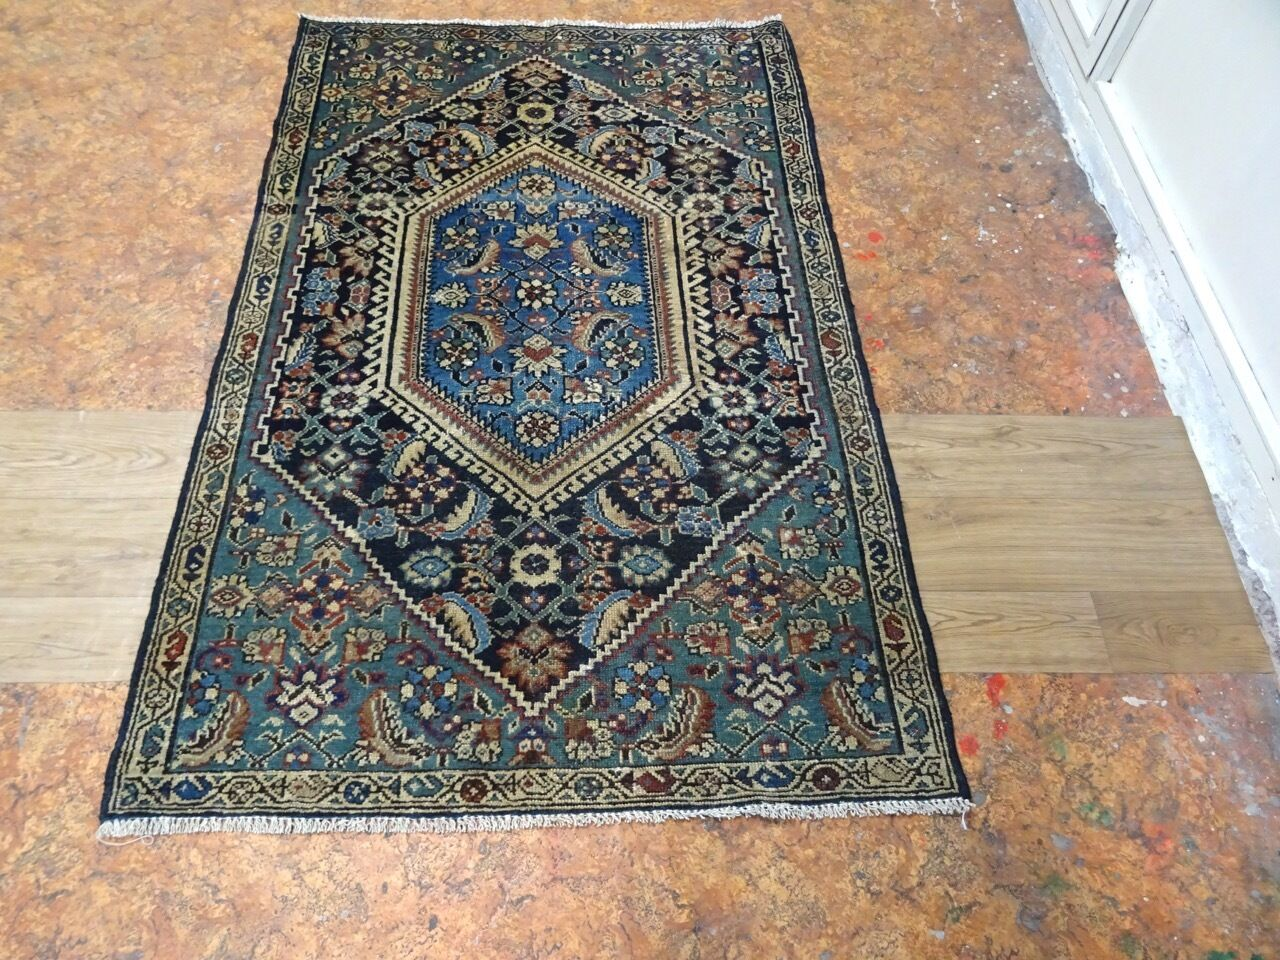 "Cr.1900 Kurdish Village Exquisite Antique Persian Hand Made Rug 3' 3"" x 5' 1"""